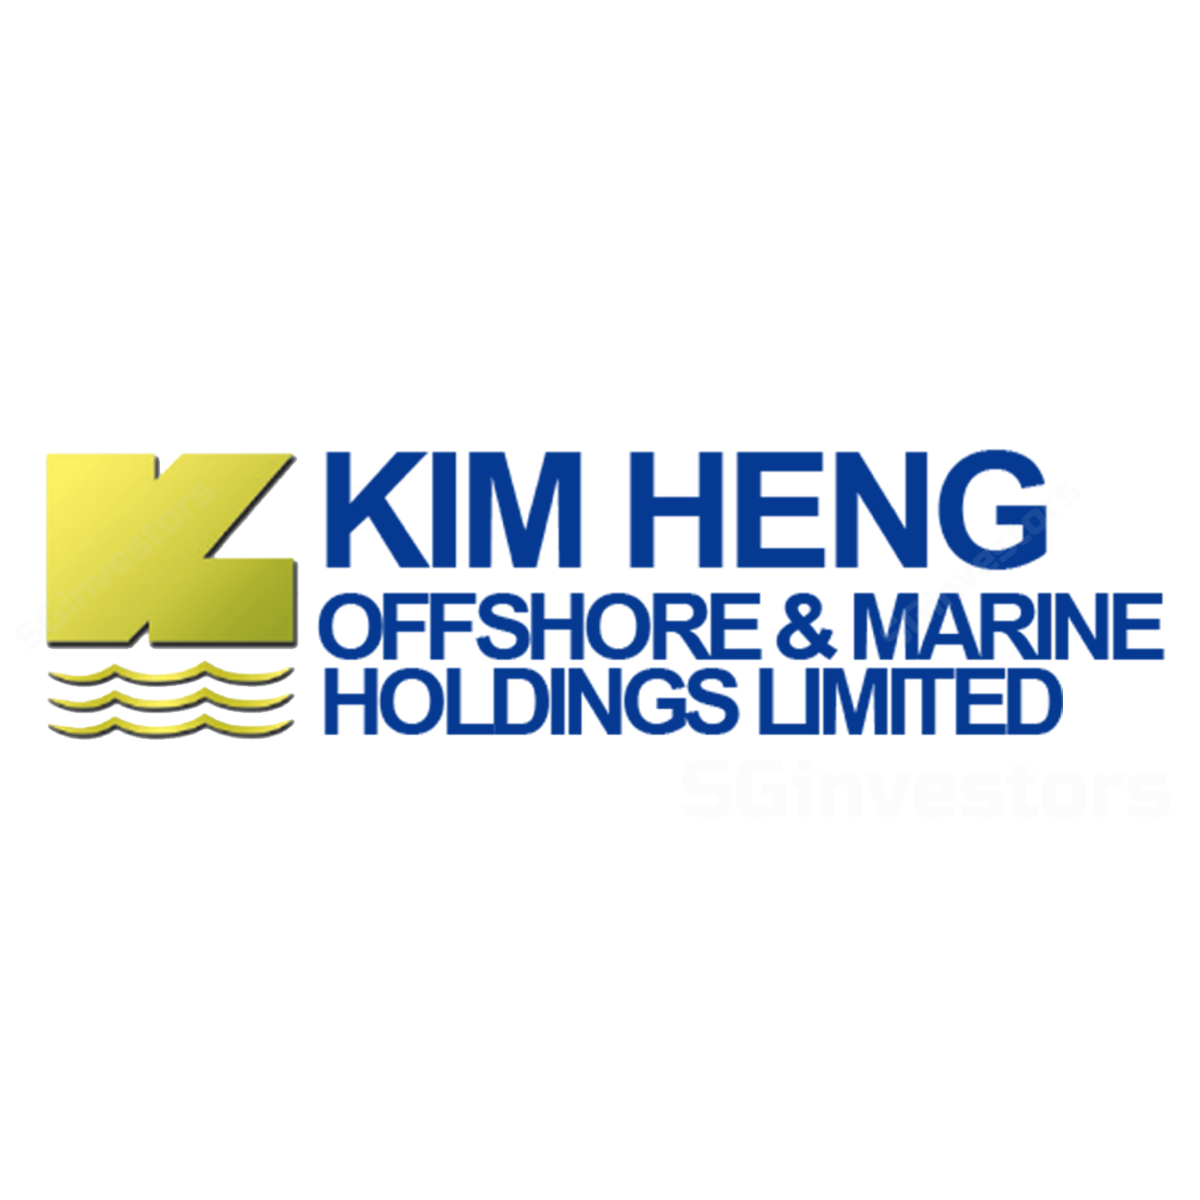 Kim Heng Offshore & Marine Hldgs Ltd (KHOM SP) - DBS Vickers 2016-12-01: Small Mid Caps Radar Explorations